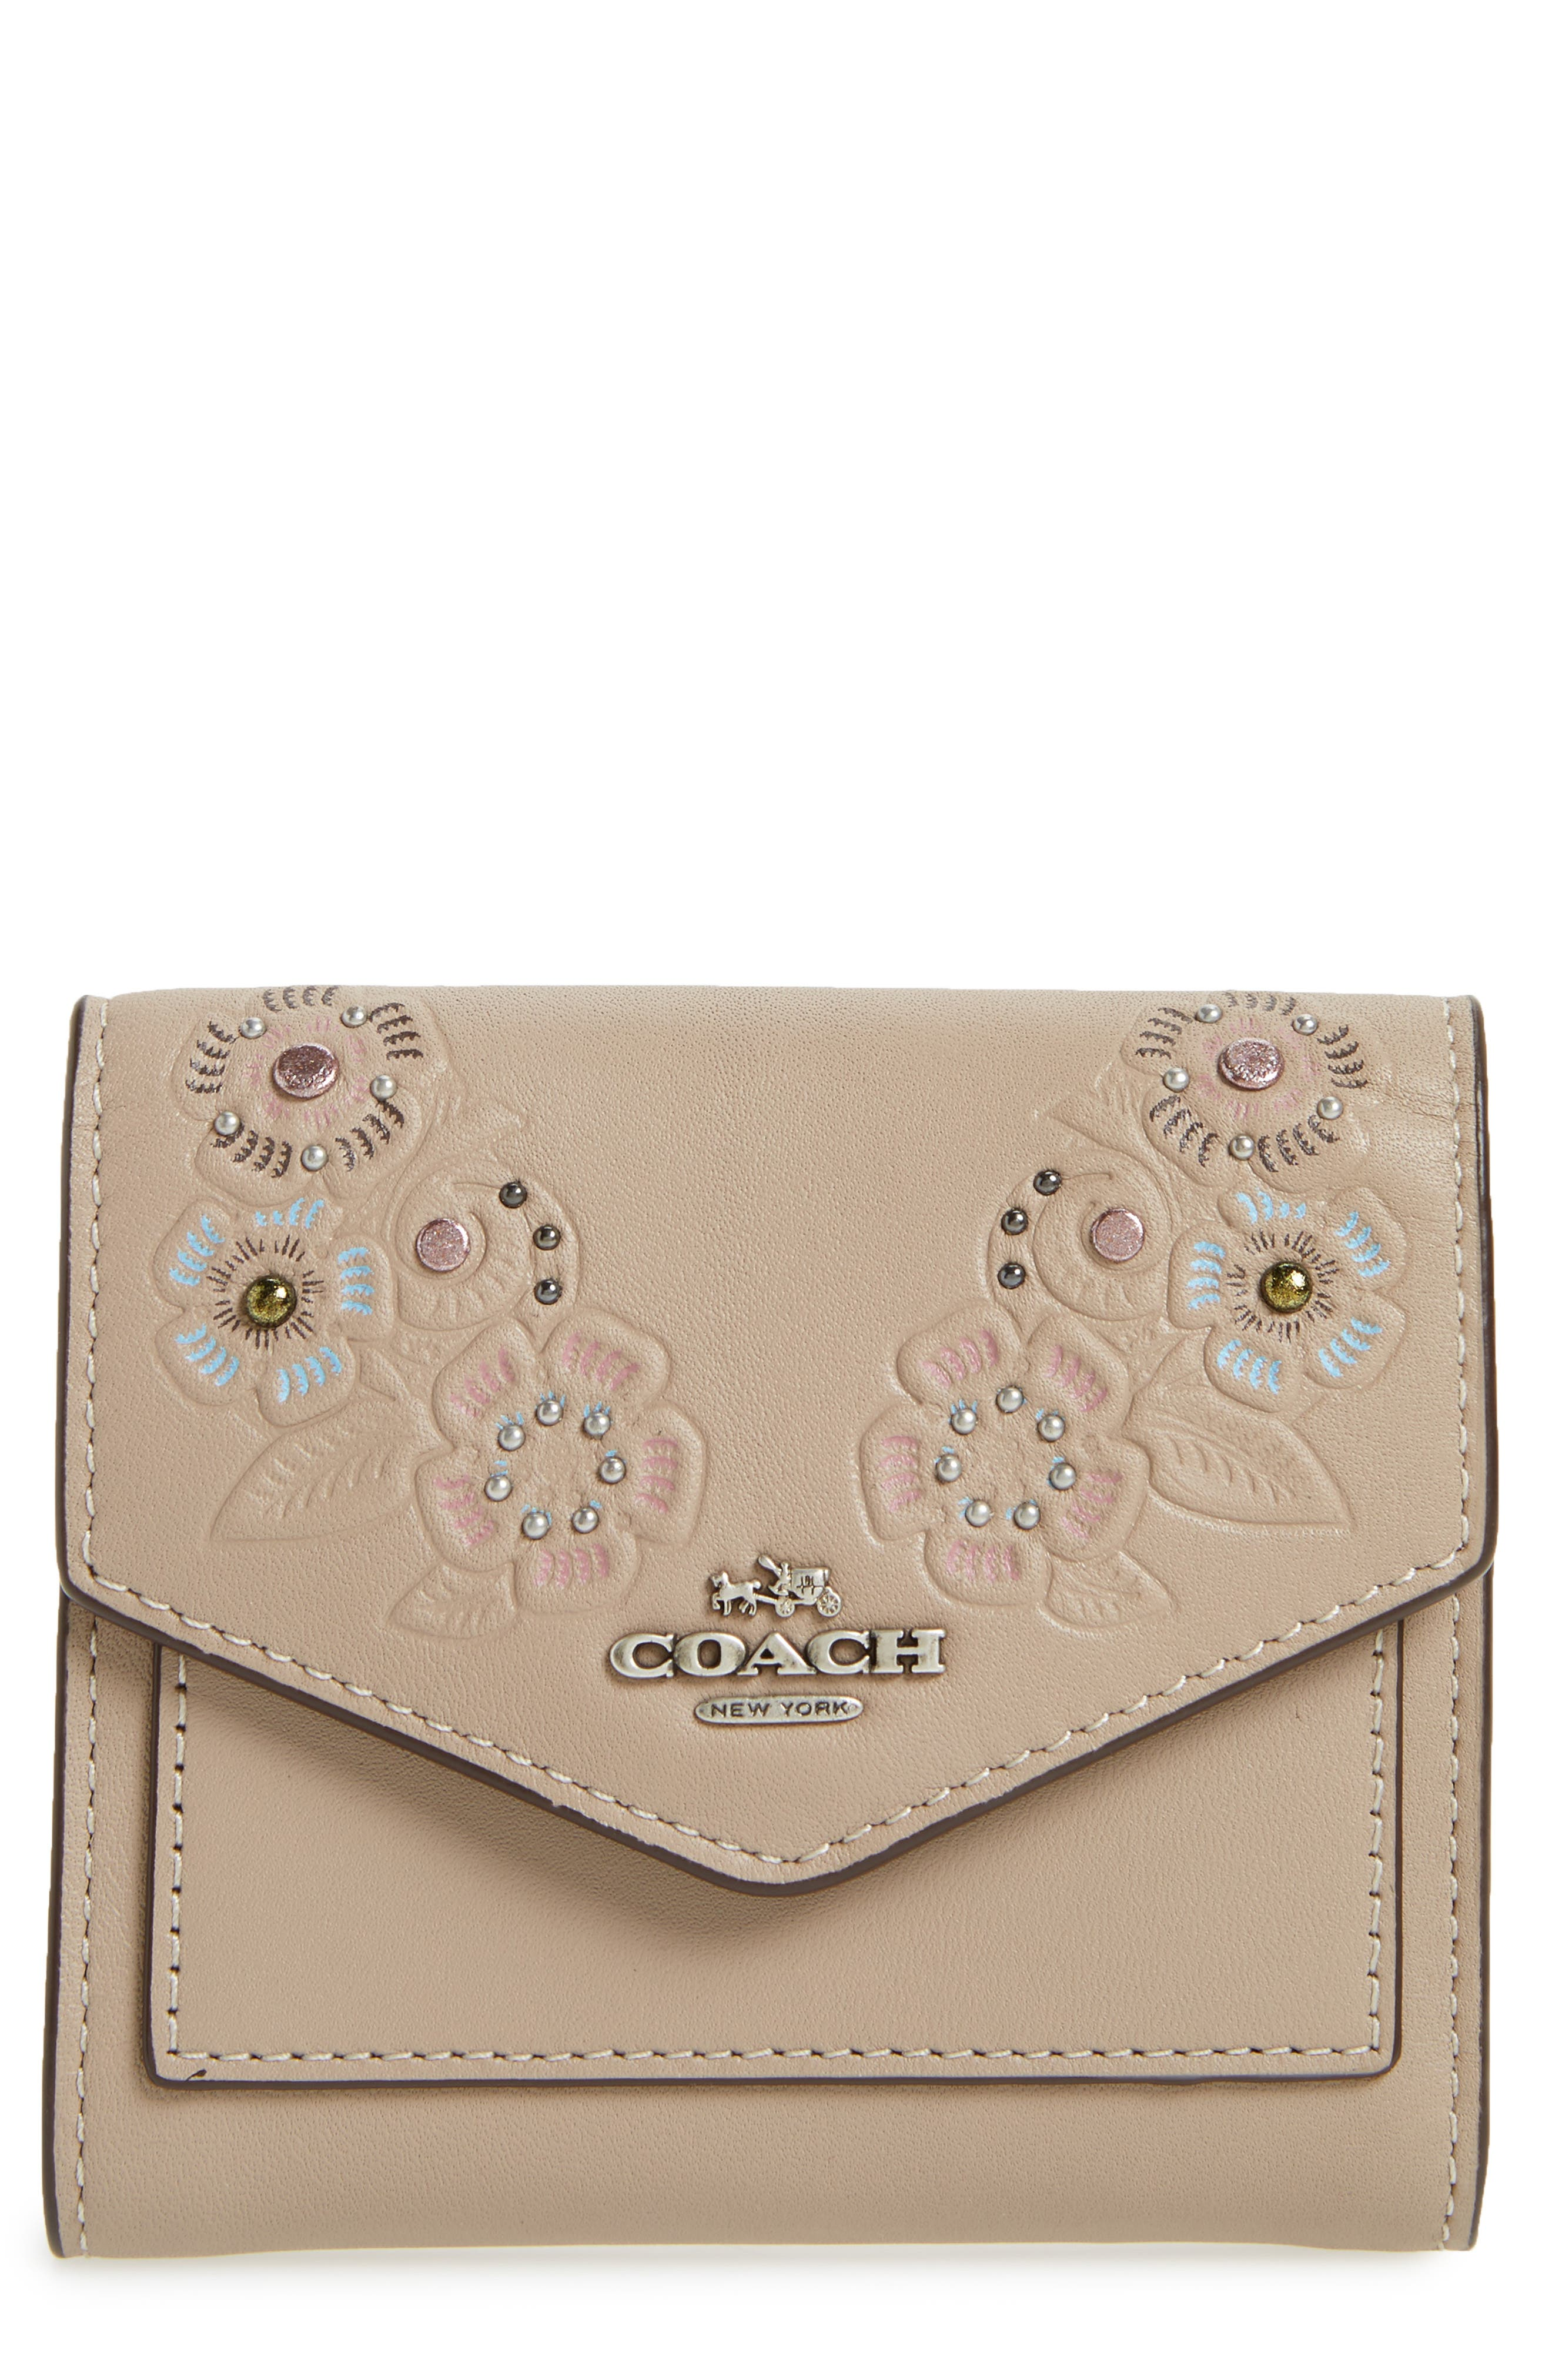 Small Tea Rose Calfskin Leather Trifold Wallet,                         Main,                         color, 020